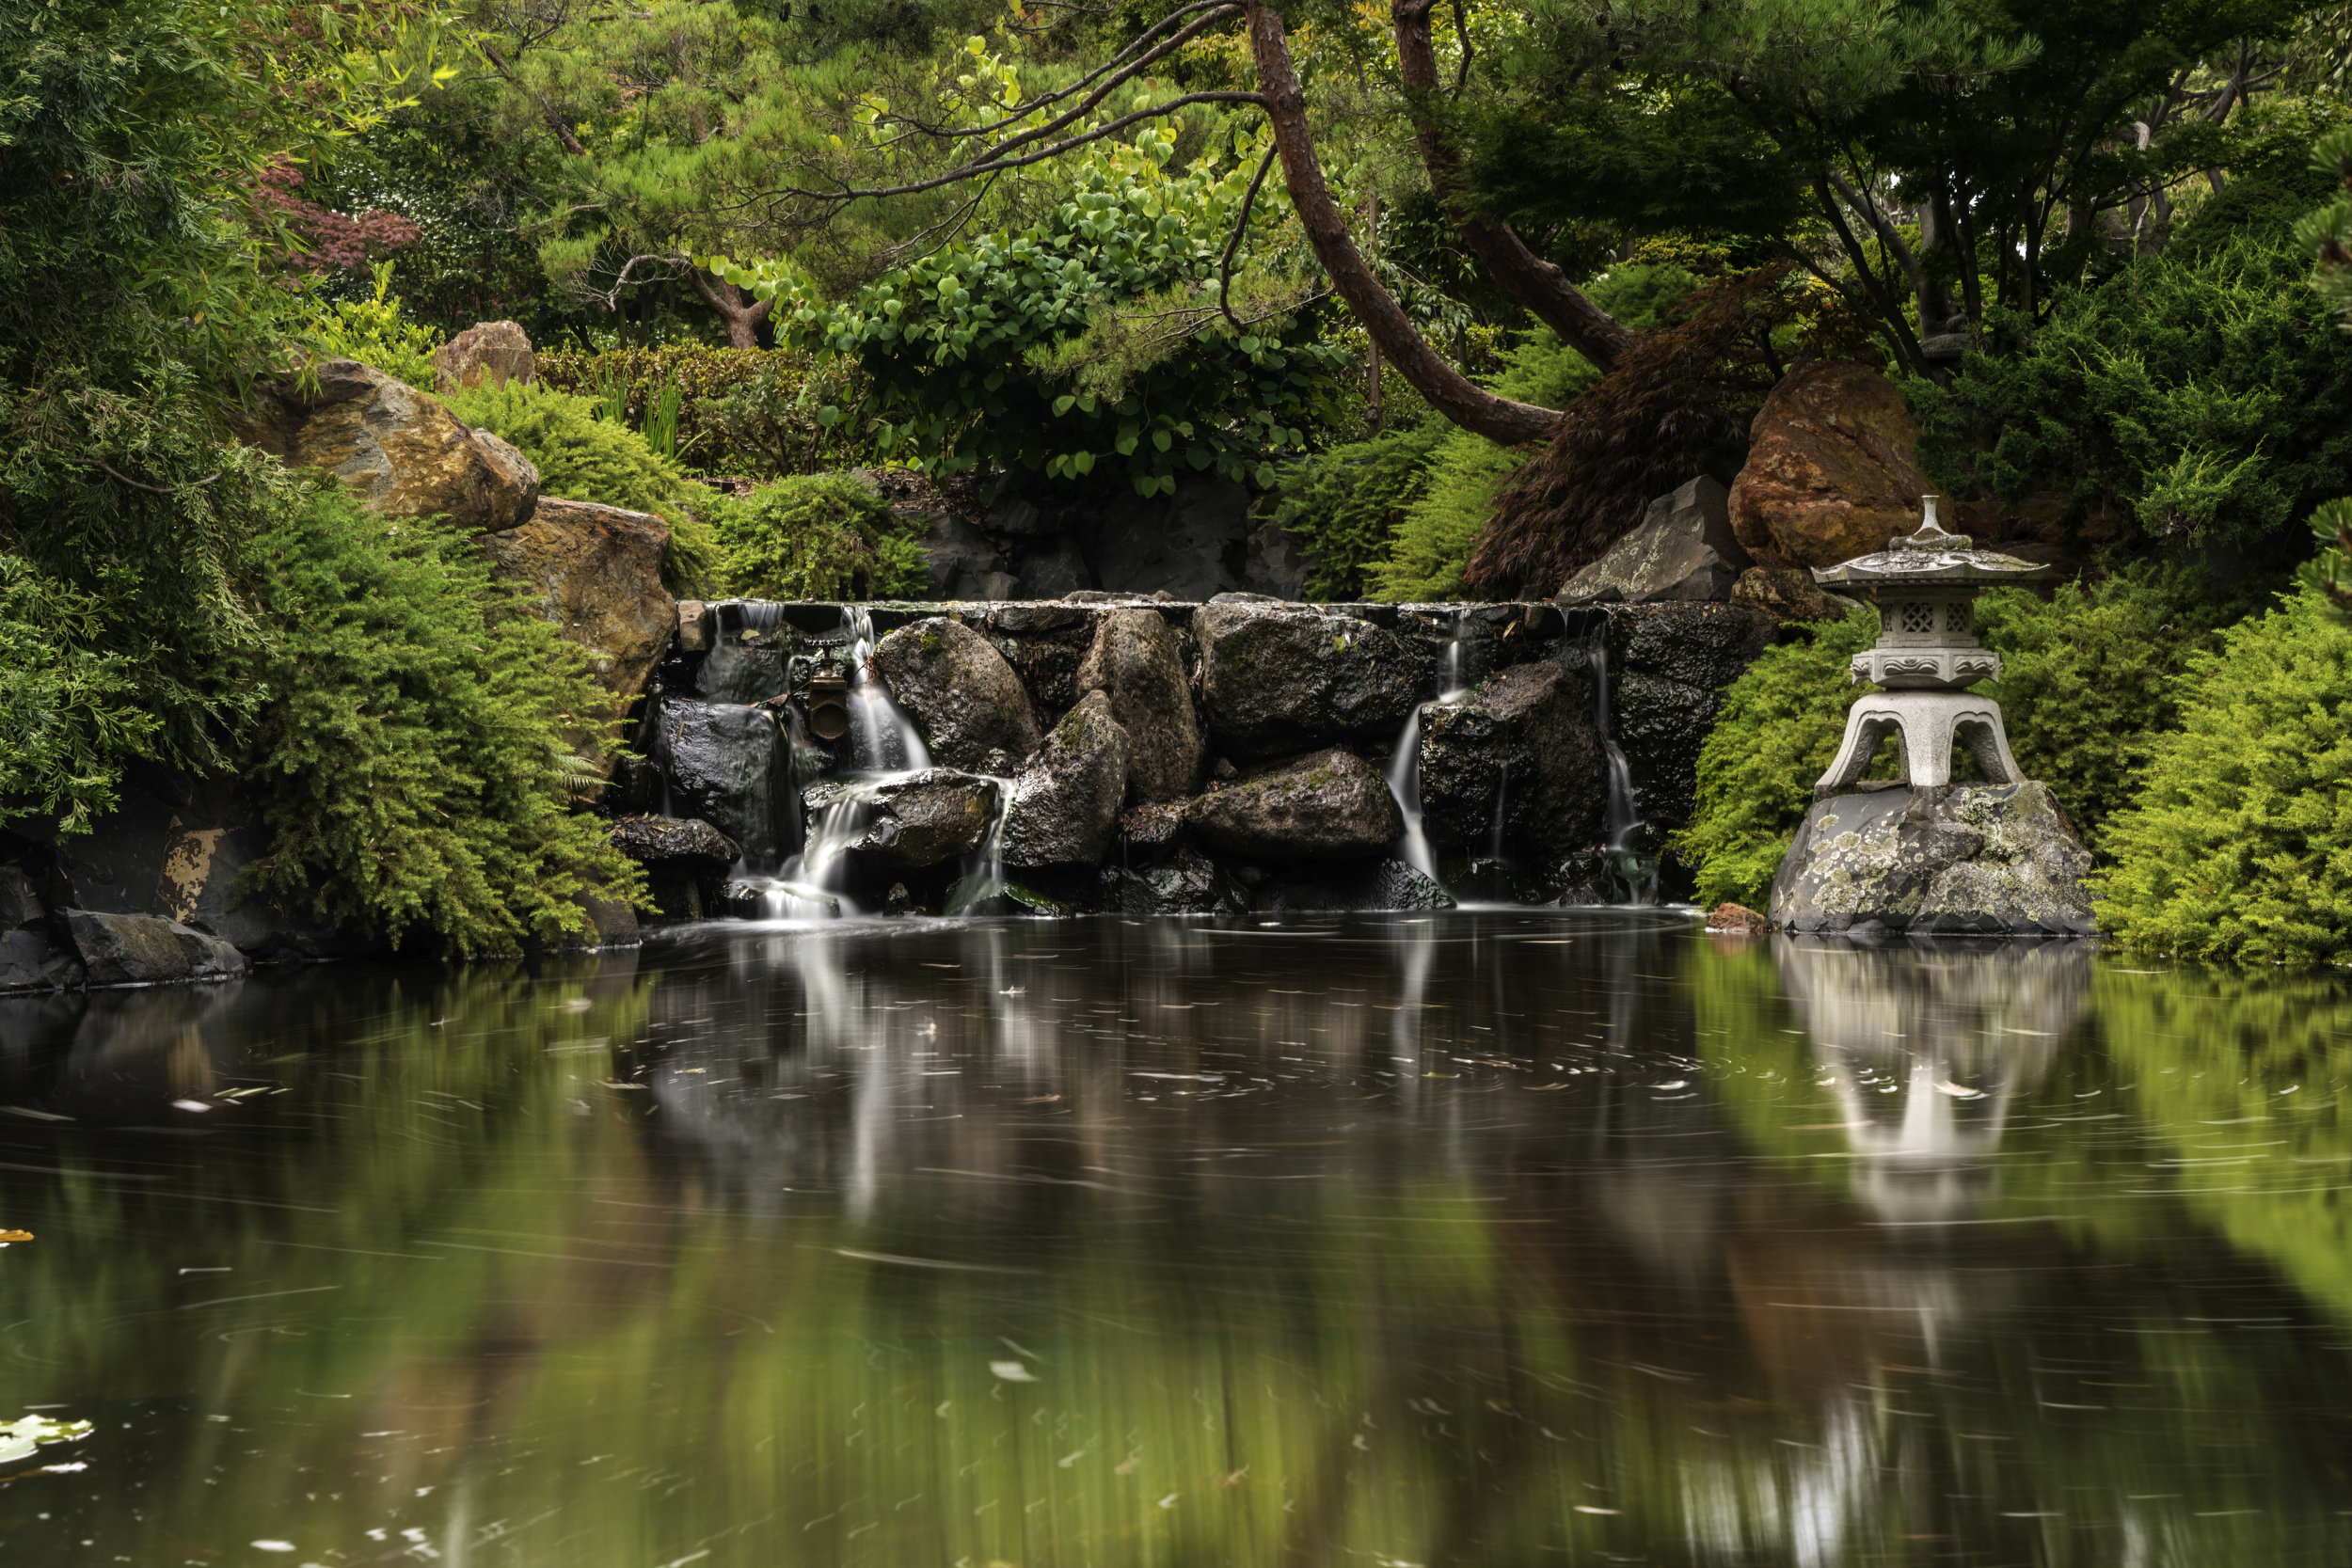 I left the Royal Botanical Gardens in Hobart with a bunch of 'okay' photos – good enough for a desktop background, but doesn't make the cut for my portfolios.